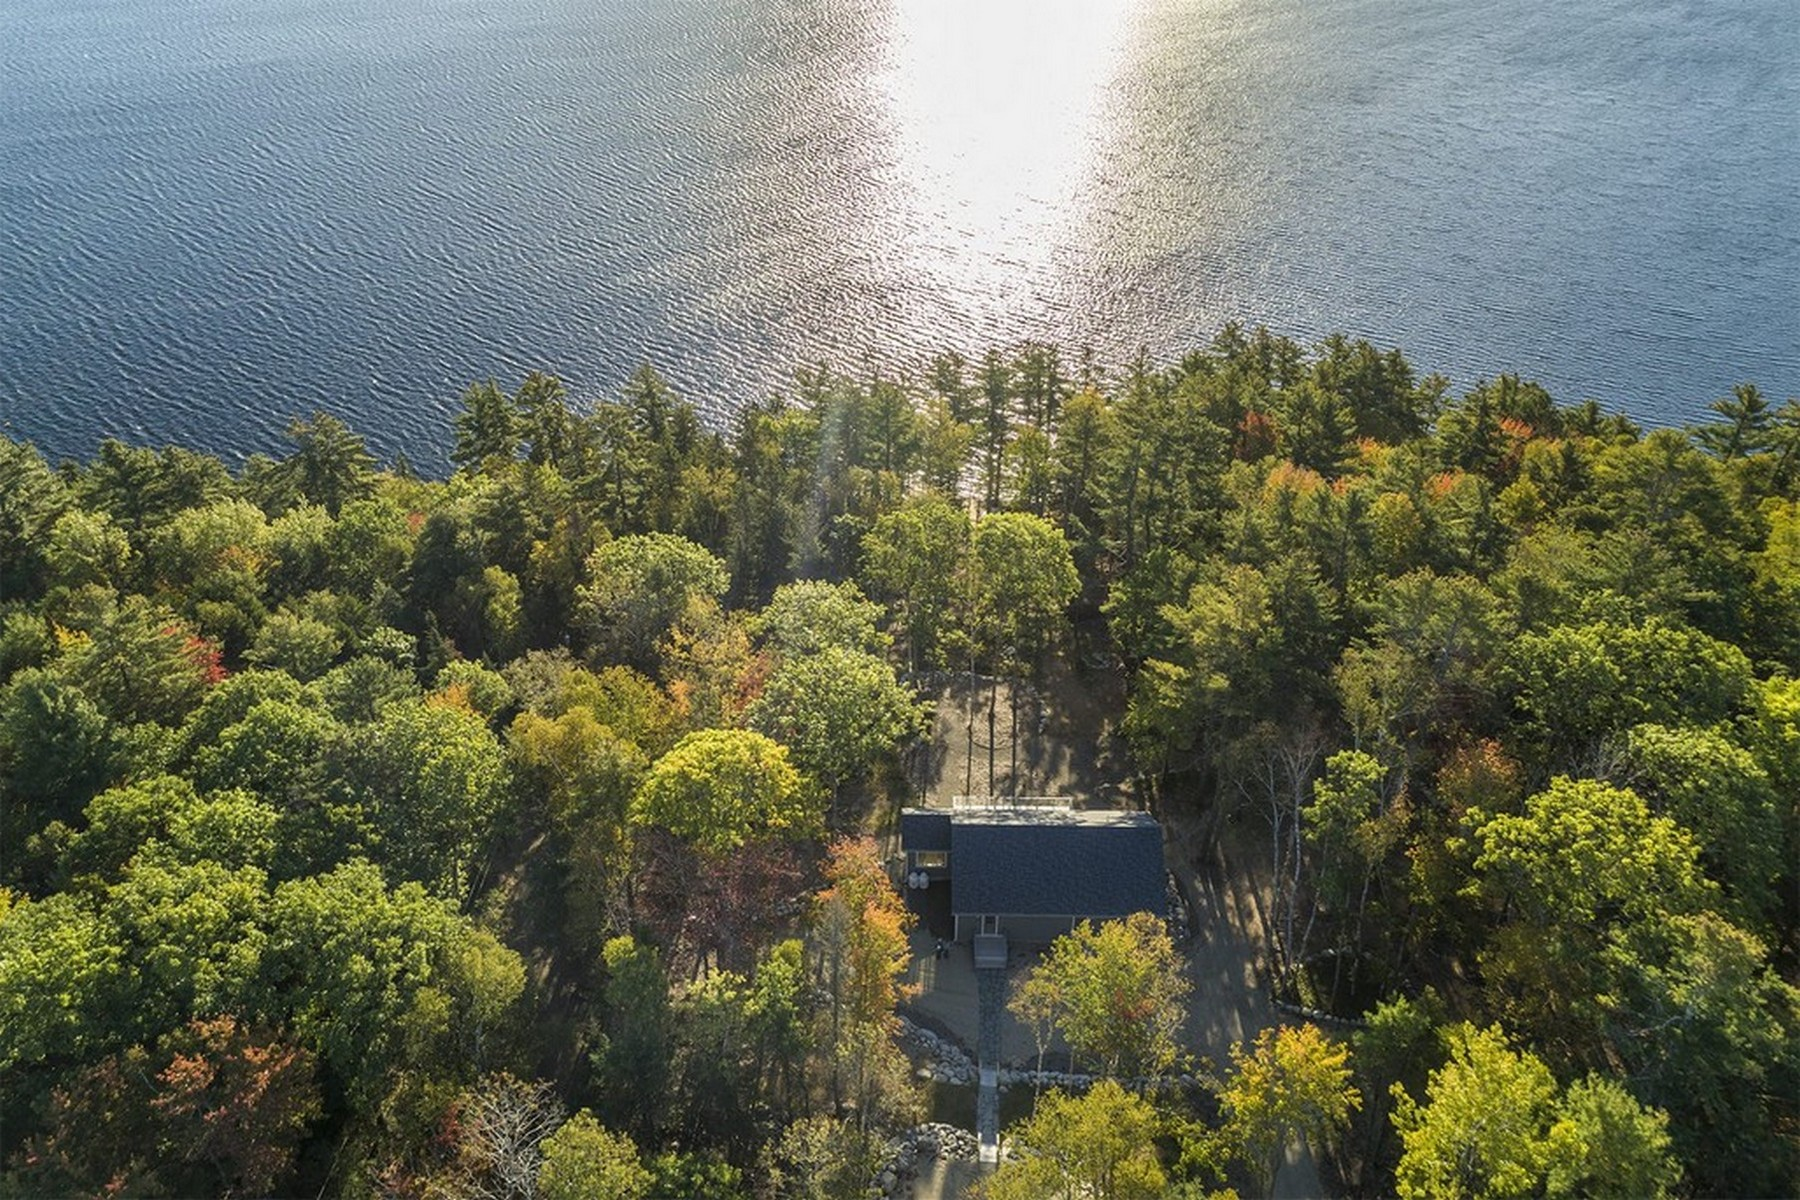 Single Family Home for Sale at Toddy on the Rocks 1332 Toddy Pond Road, Surry, Maine, 04684 United States